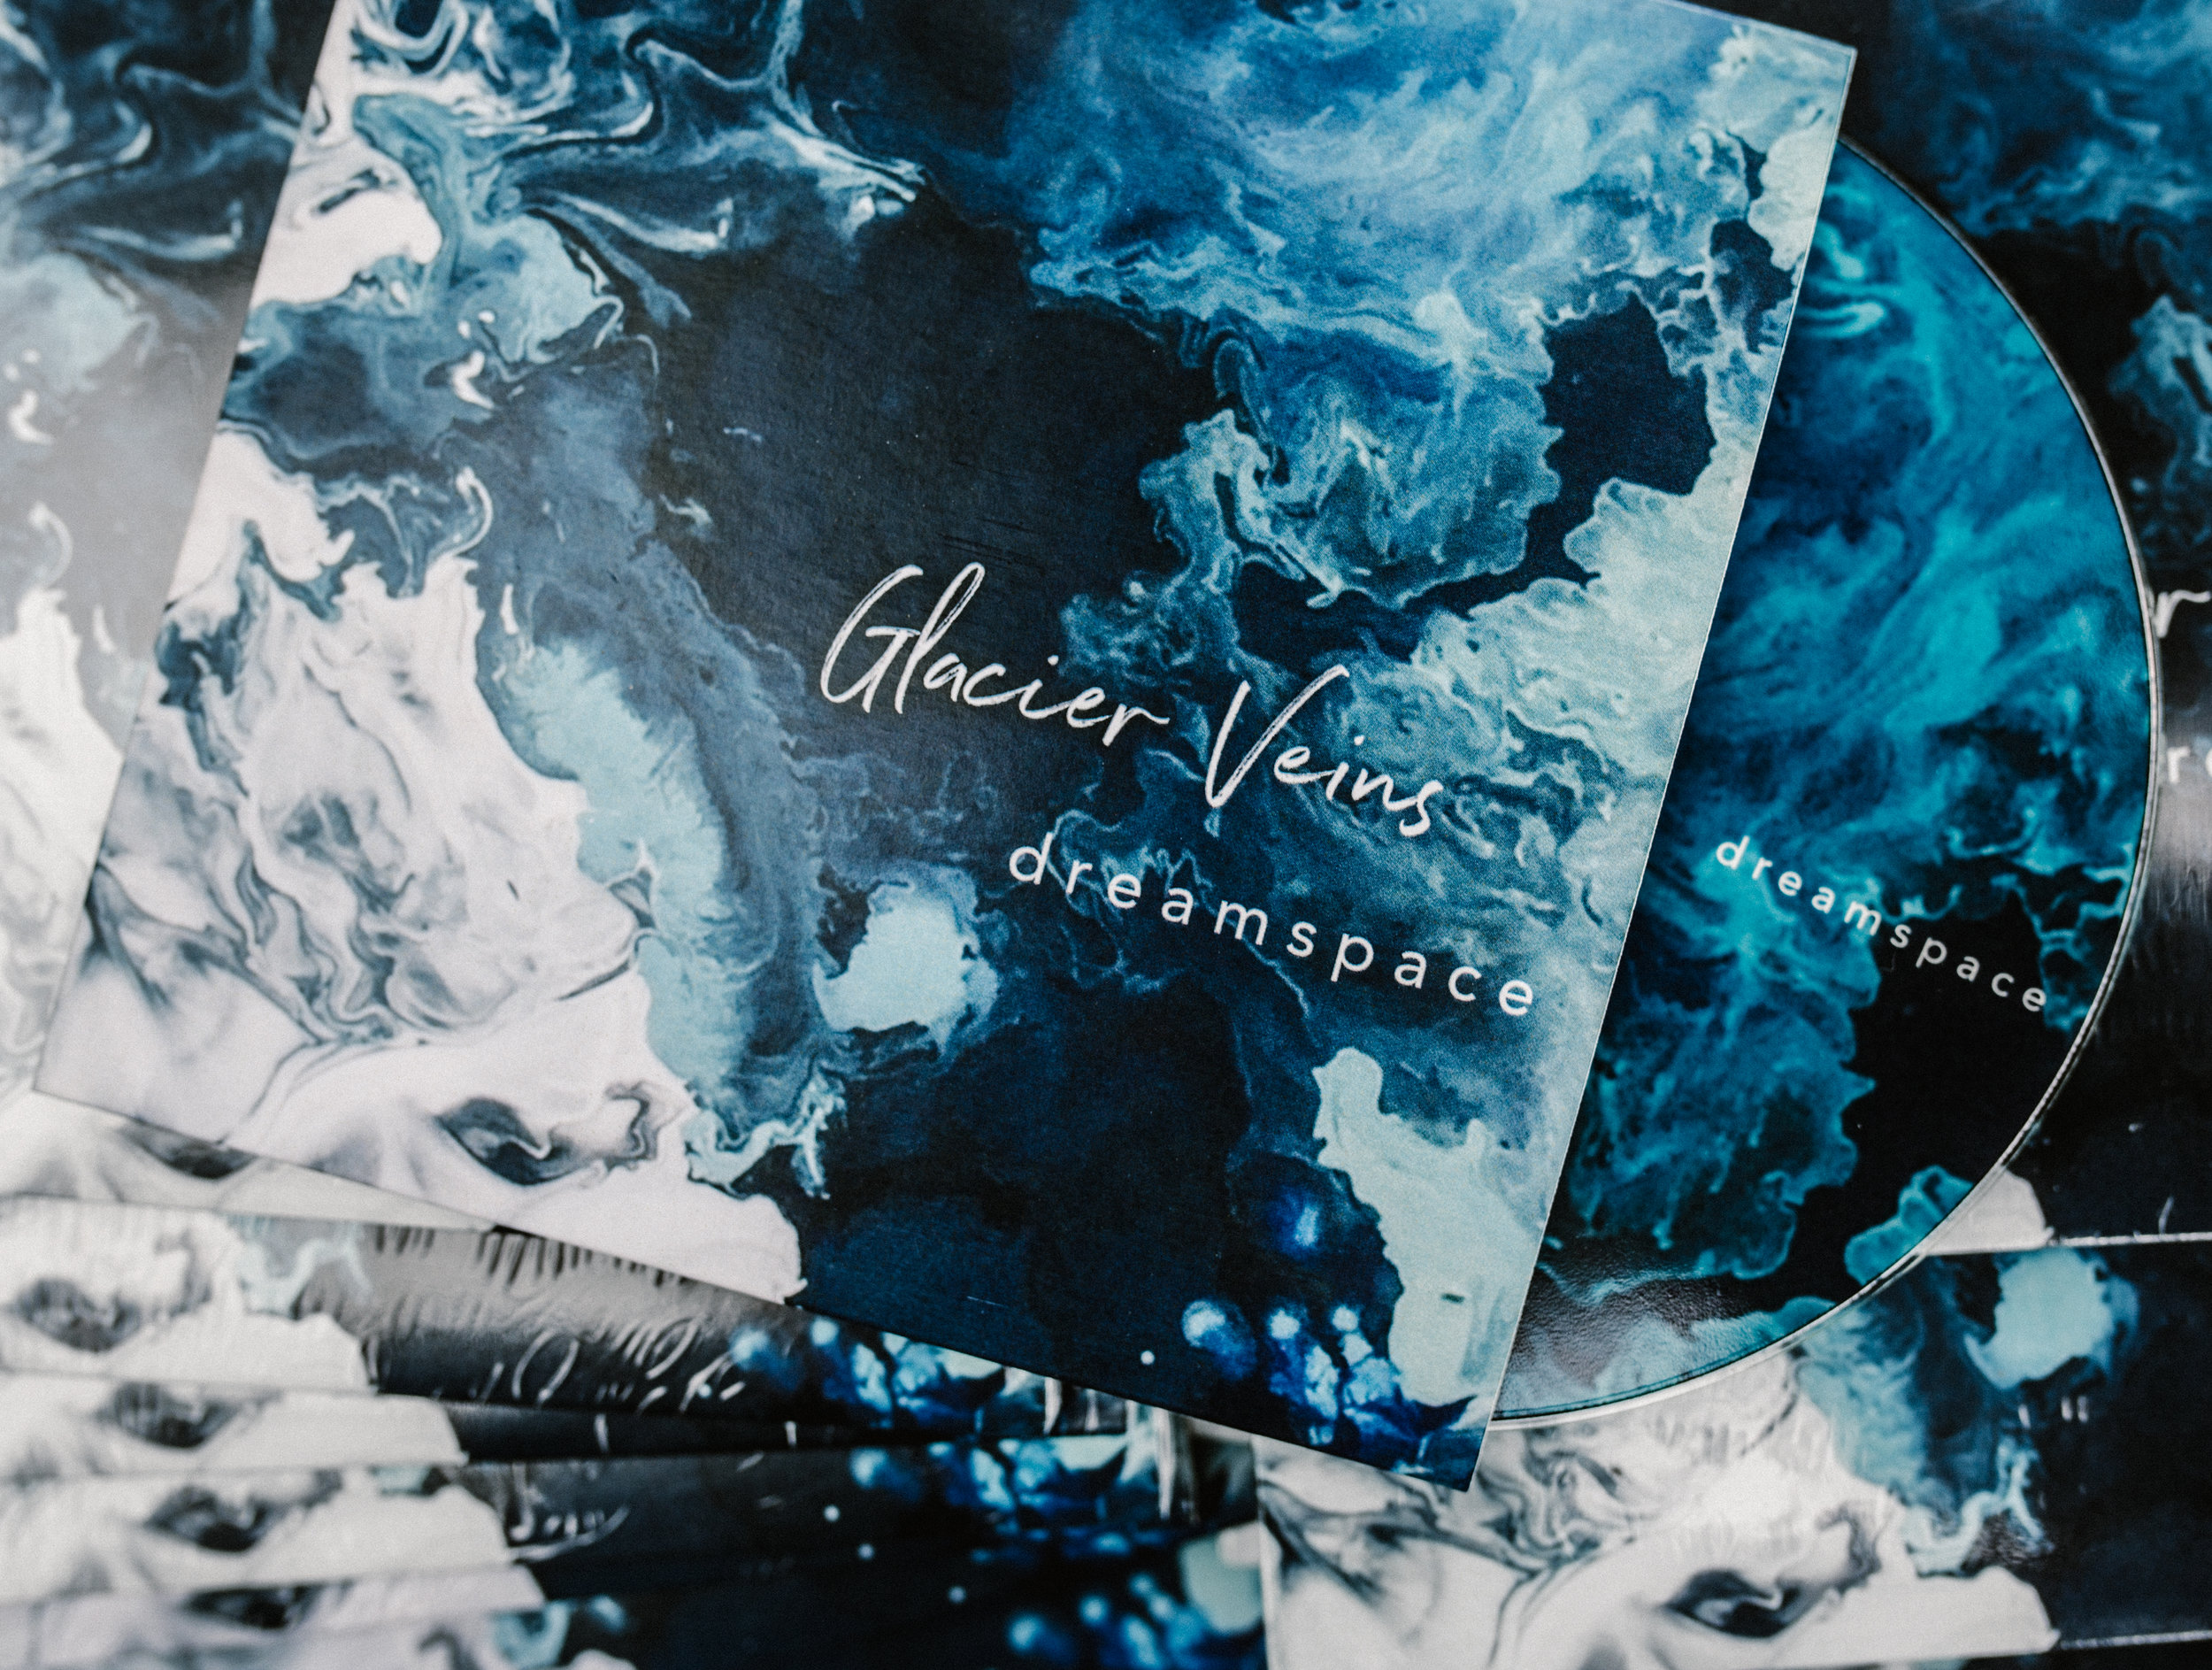 GLACIER VEINS 'DREAMSPACE' CD - $5